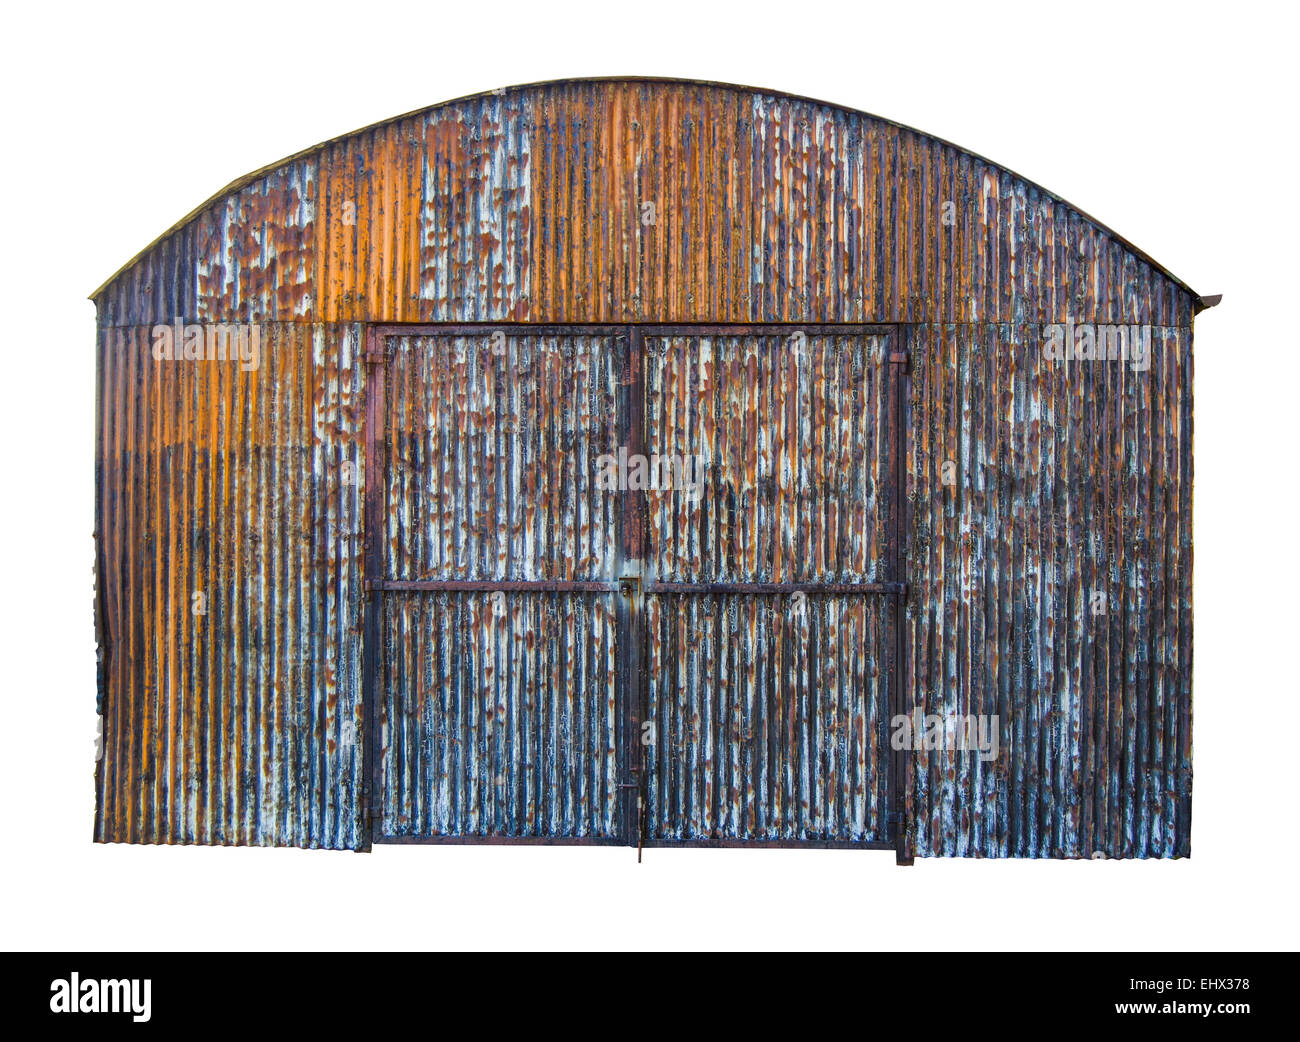 Isolated Rusty Old Corrugated Iron Barn With Clipping Path